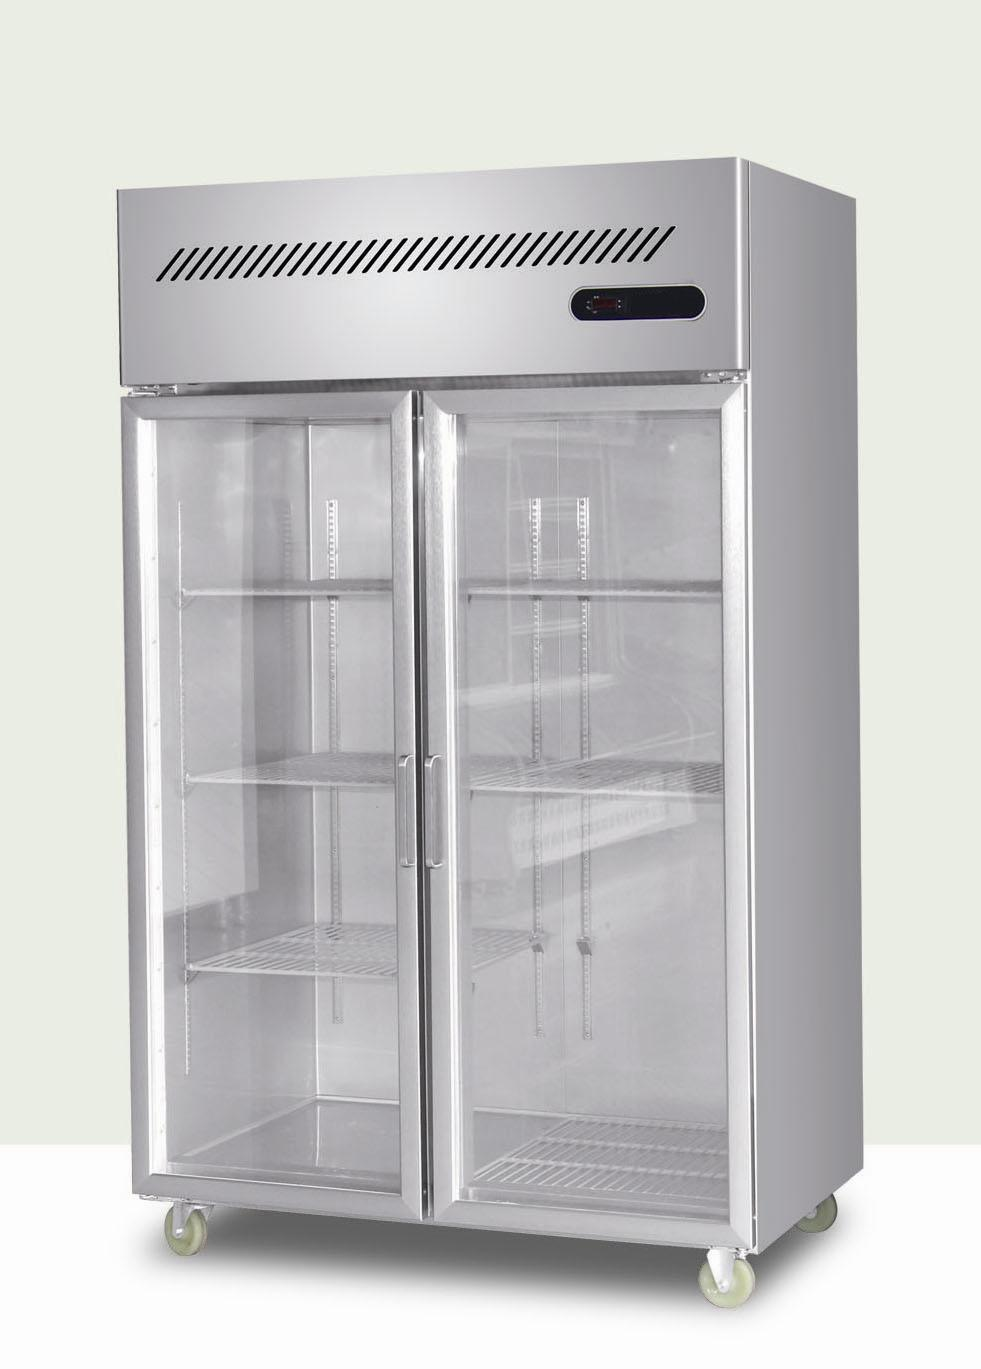 Kitchen Refrieration Equipment Qingdao Reliance